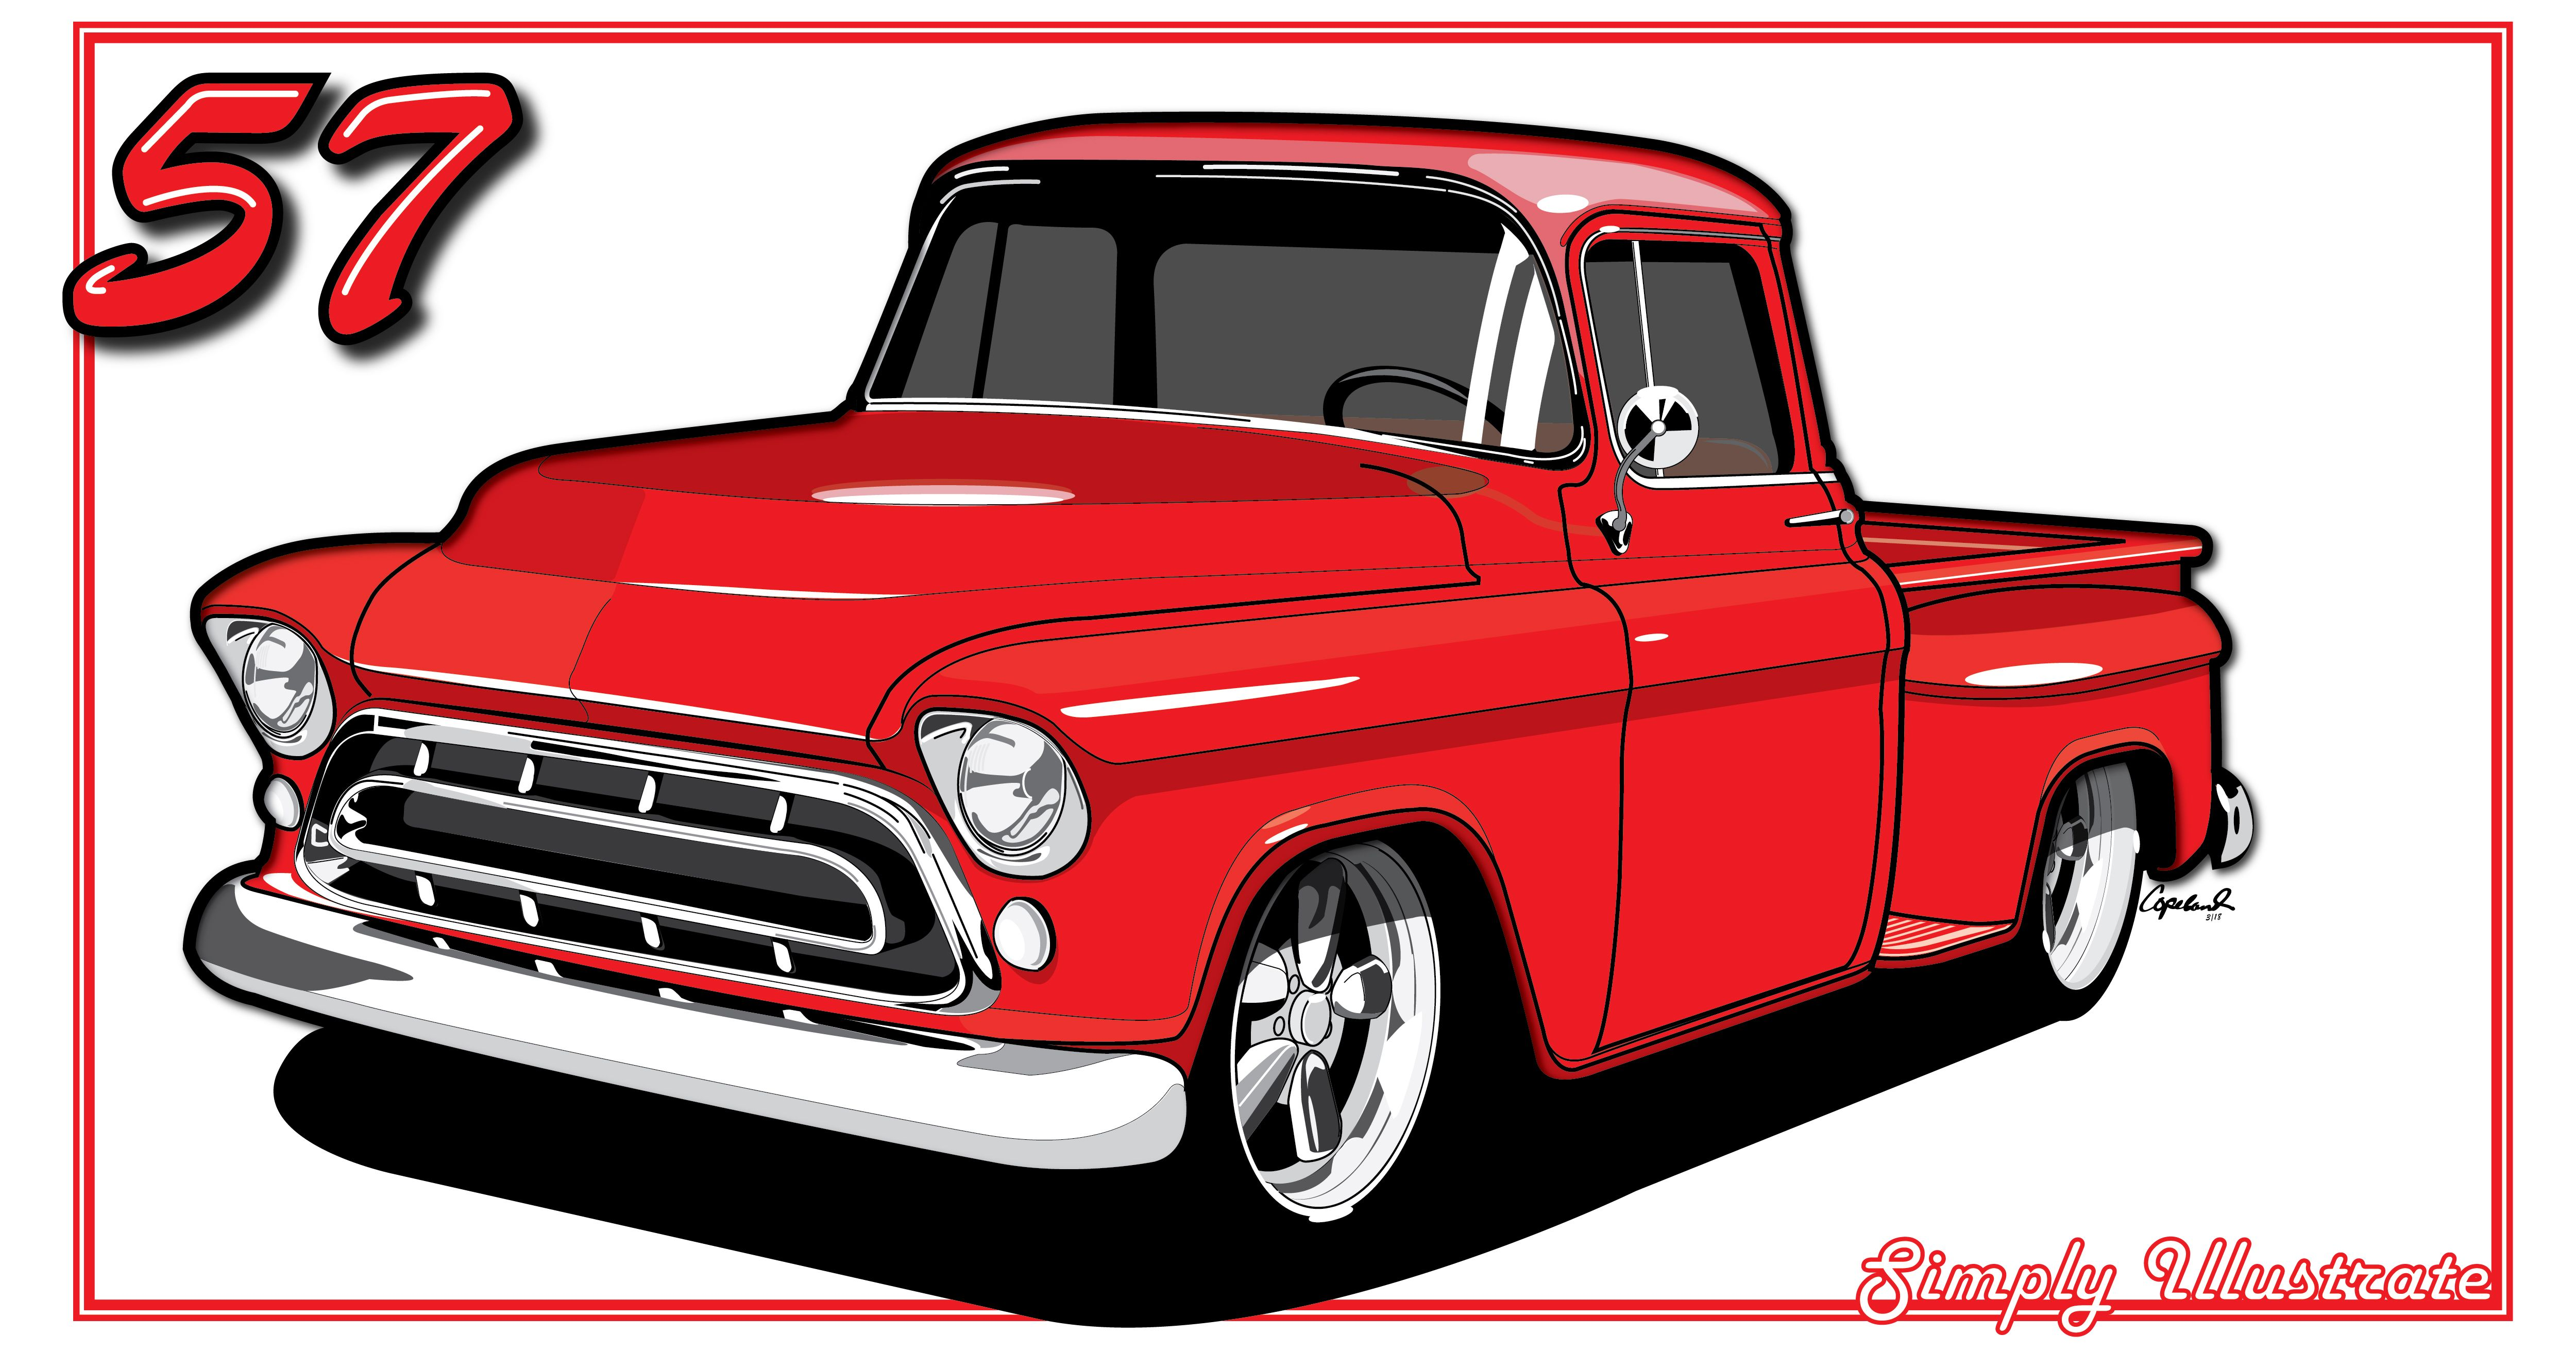 77 chevy truck clipart Transparent pictures on F.